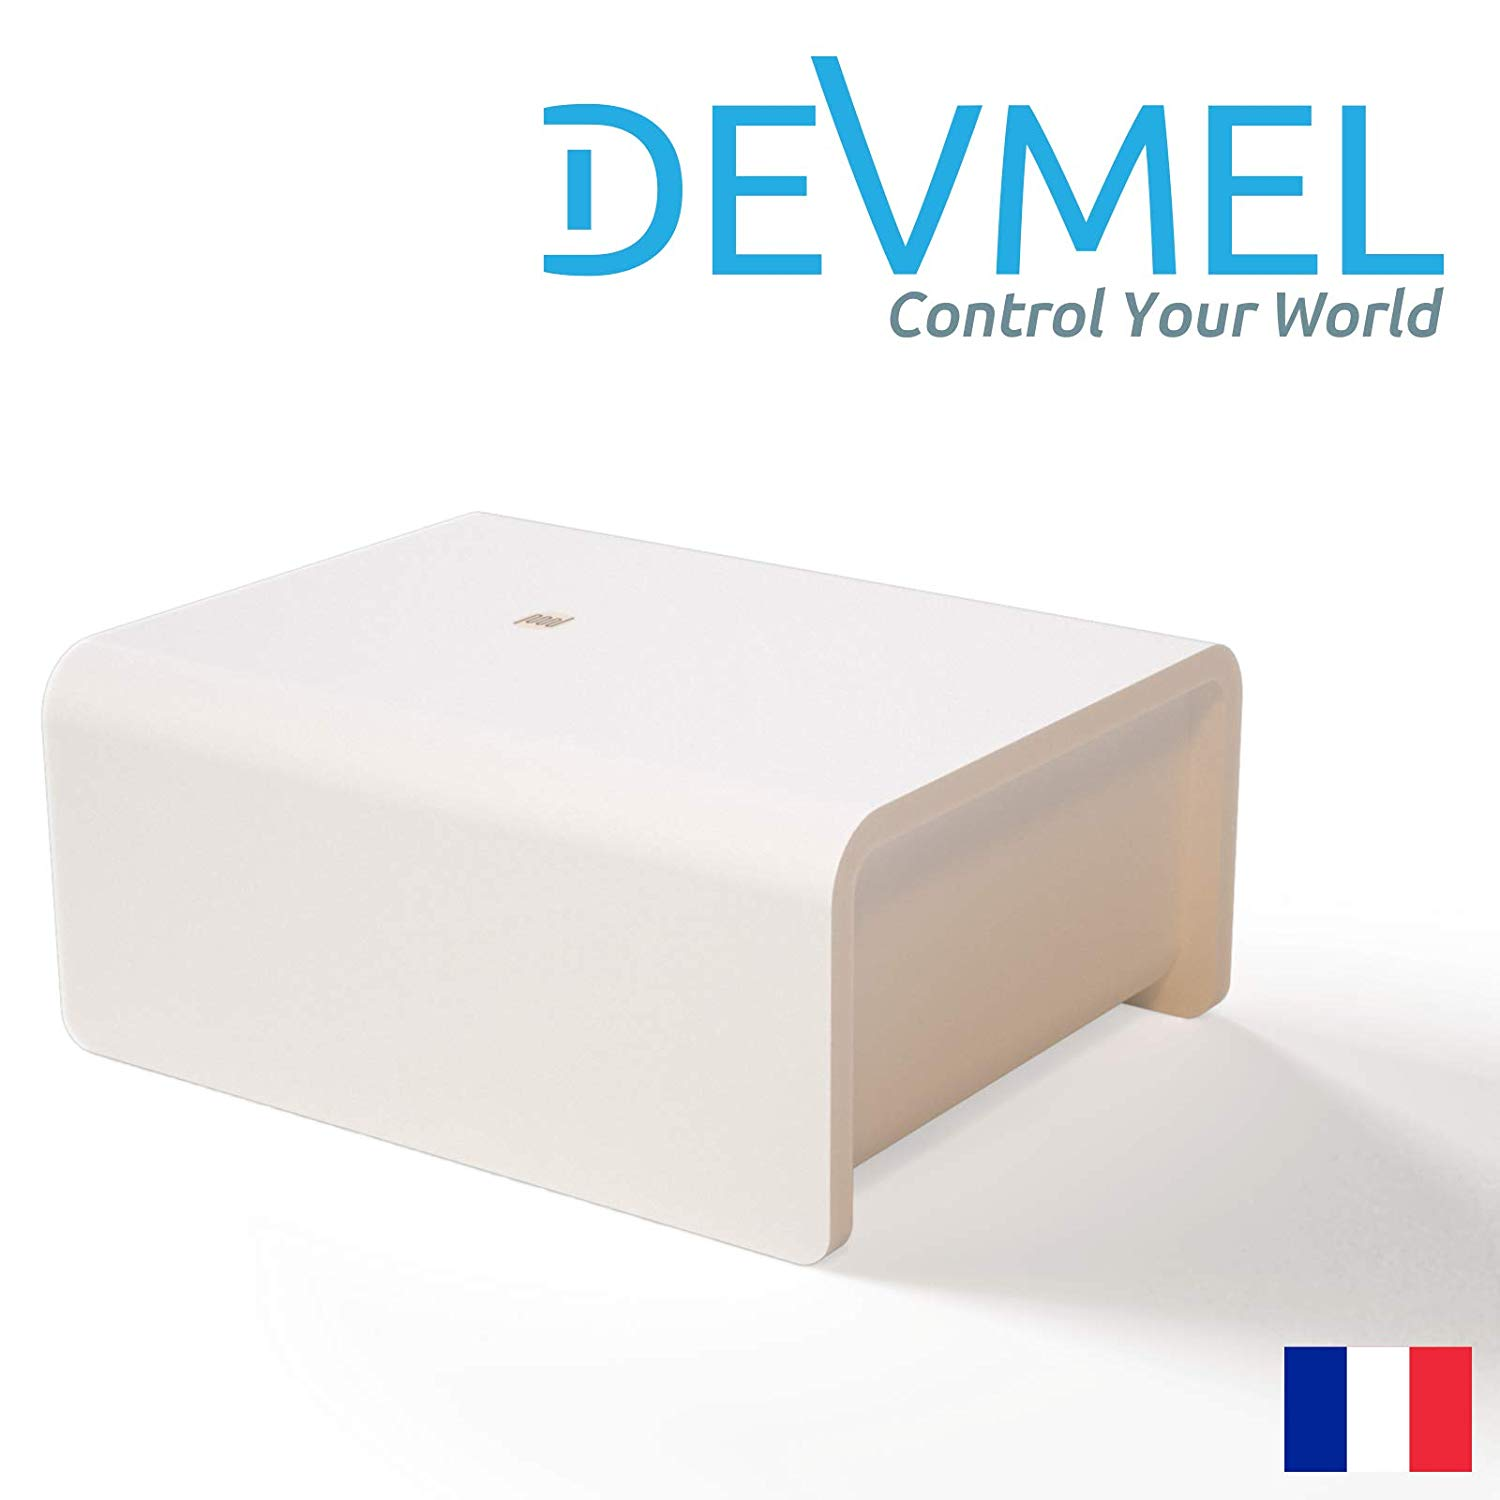 Devmel AirSend - Domotique 433Mhz Compatible Somfy, Chacon, Nice.